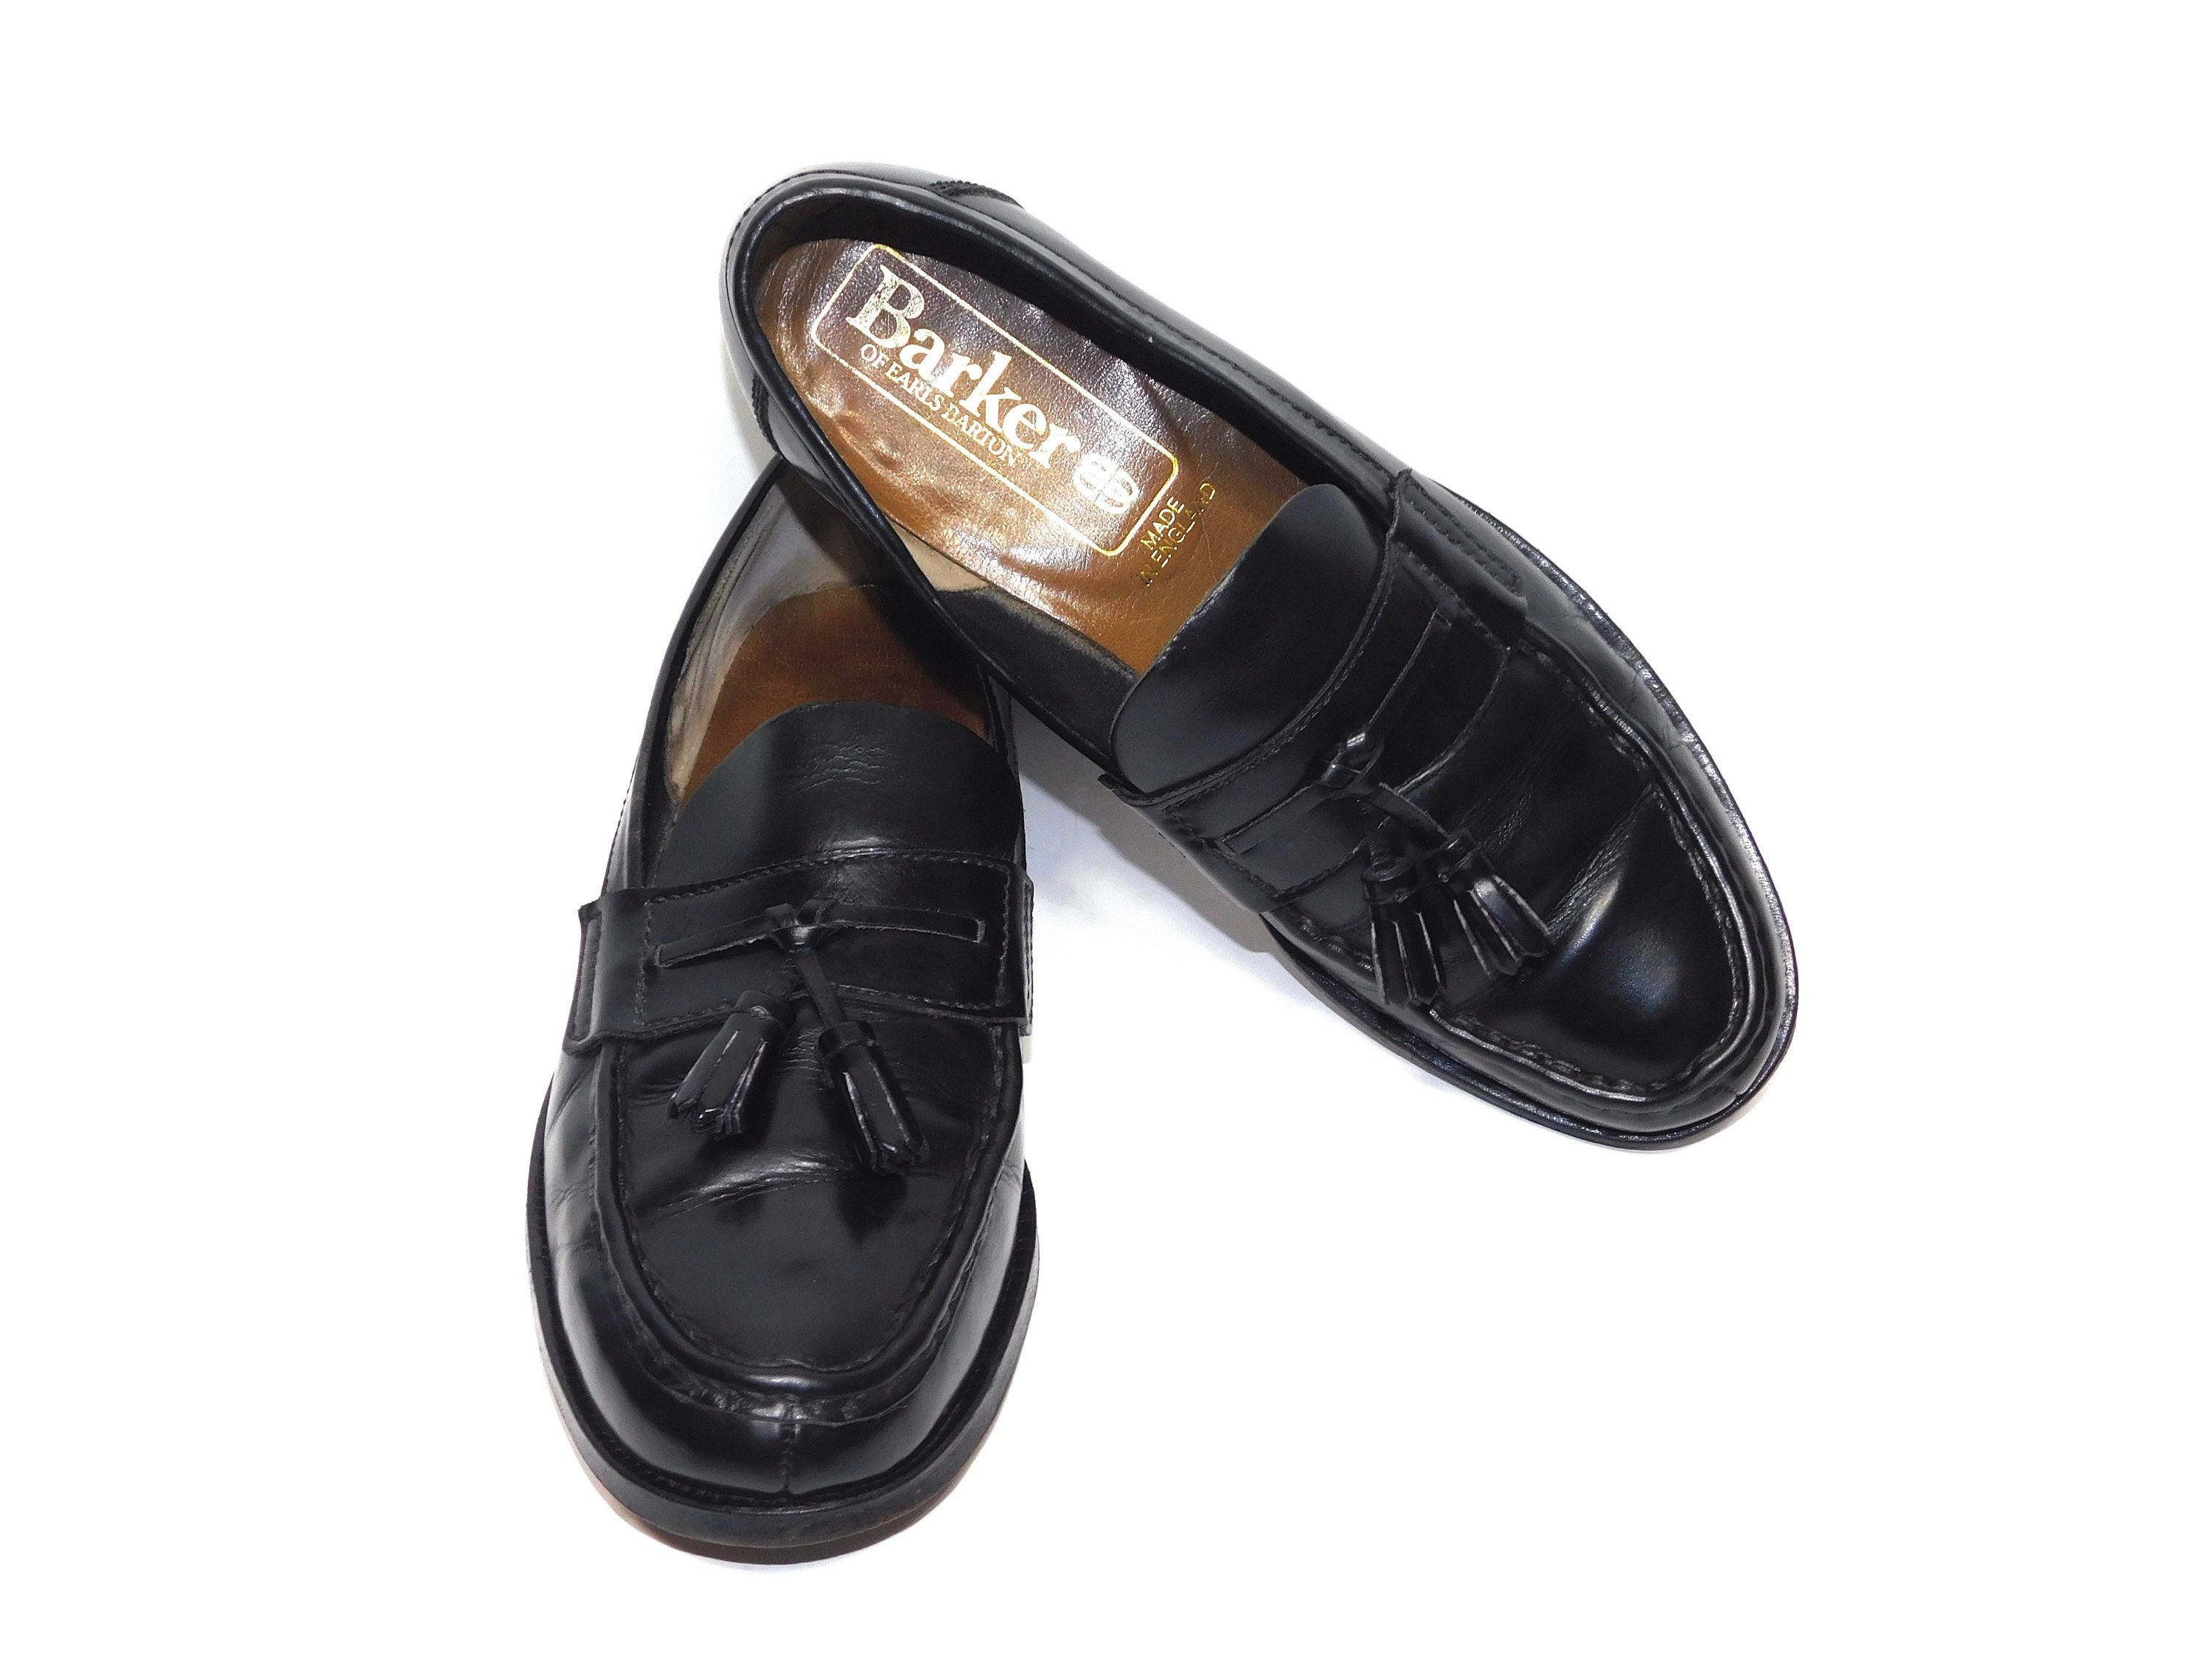 e0b468334d17d Uk6~Rare Barker of Earls Barton Black Leather Penny Tassel Loafers-Made in  England ~UK6 ~ 8 to 8.5 US womens --